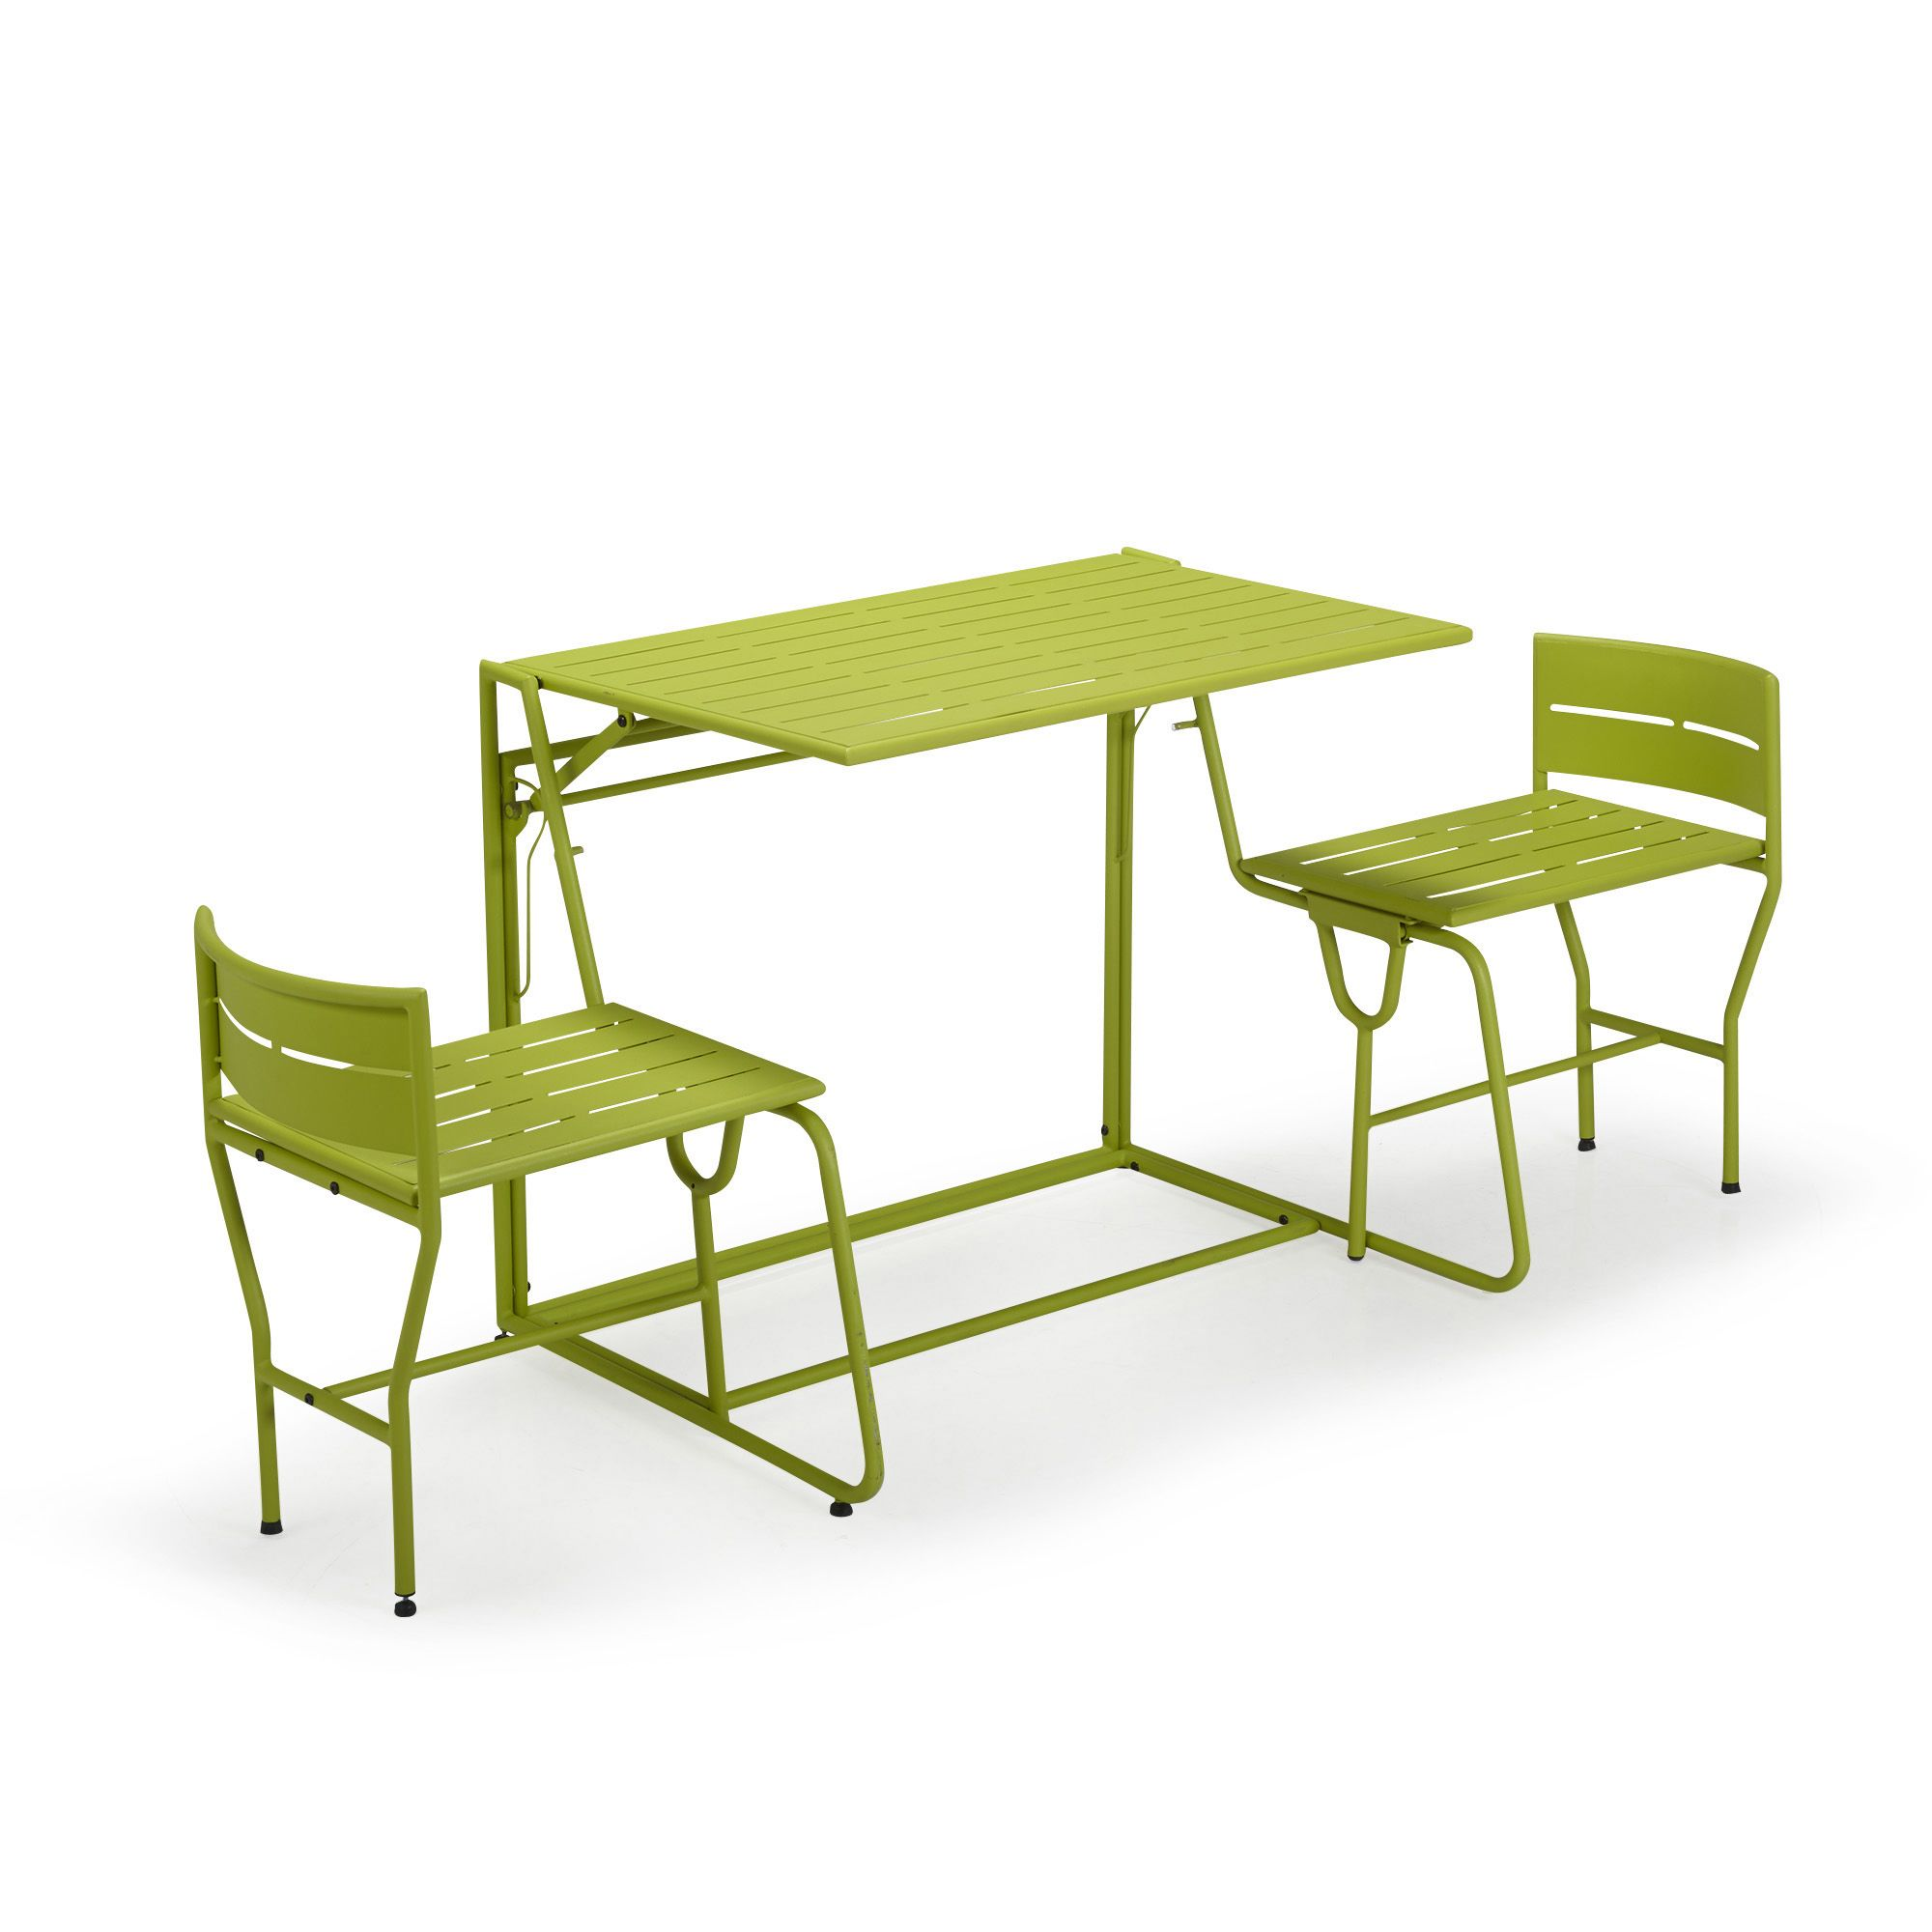 Picnic le salon de jardin balcon transformable 2 en 1 for Mini salon de jardin